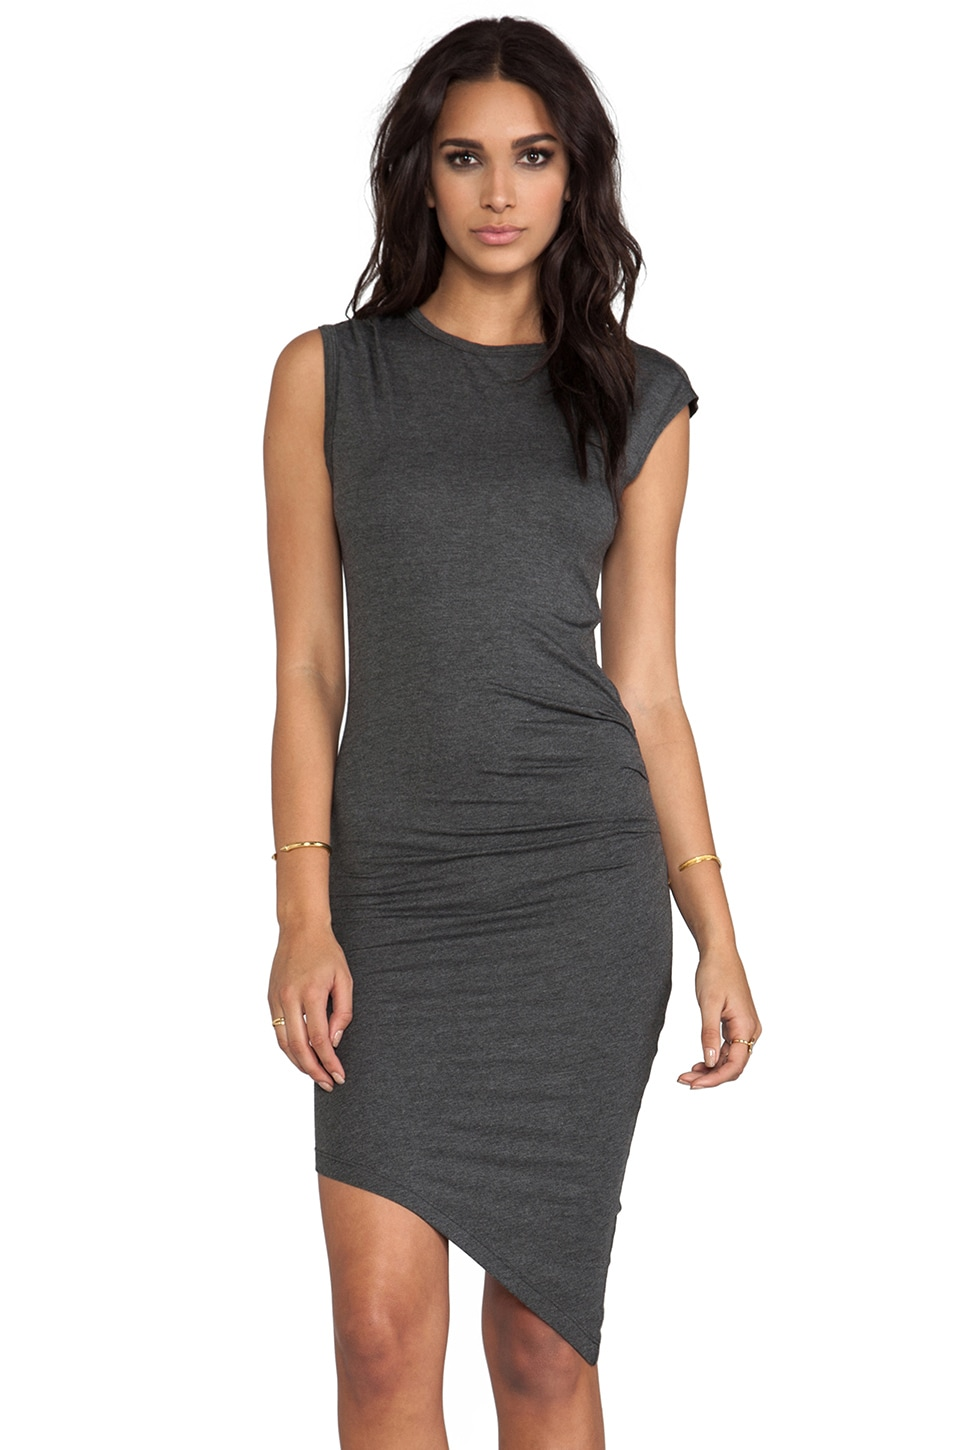 Kain Mays Dress in Heathered Charcoal